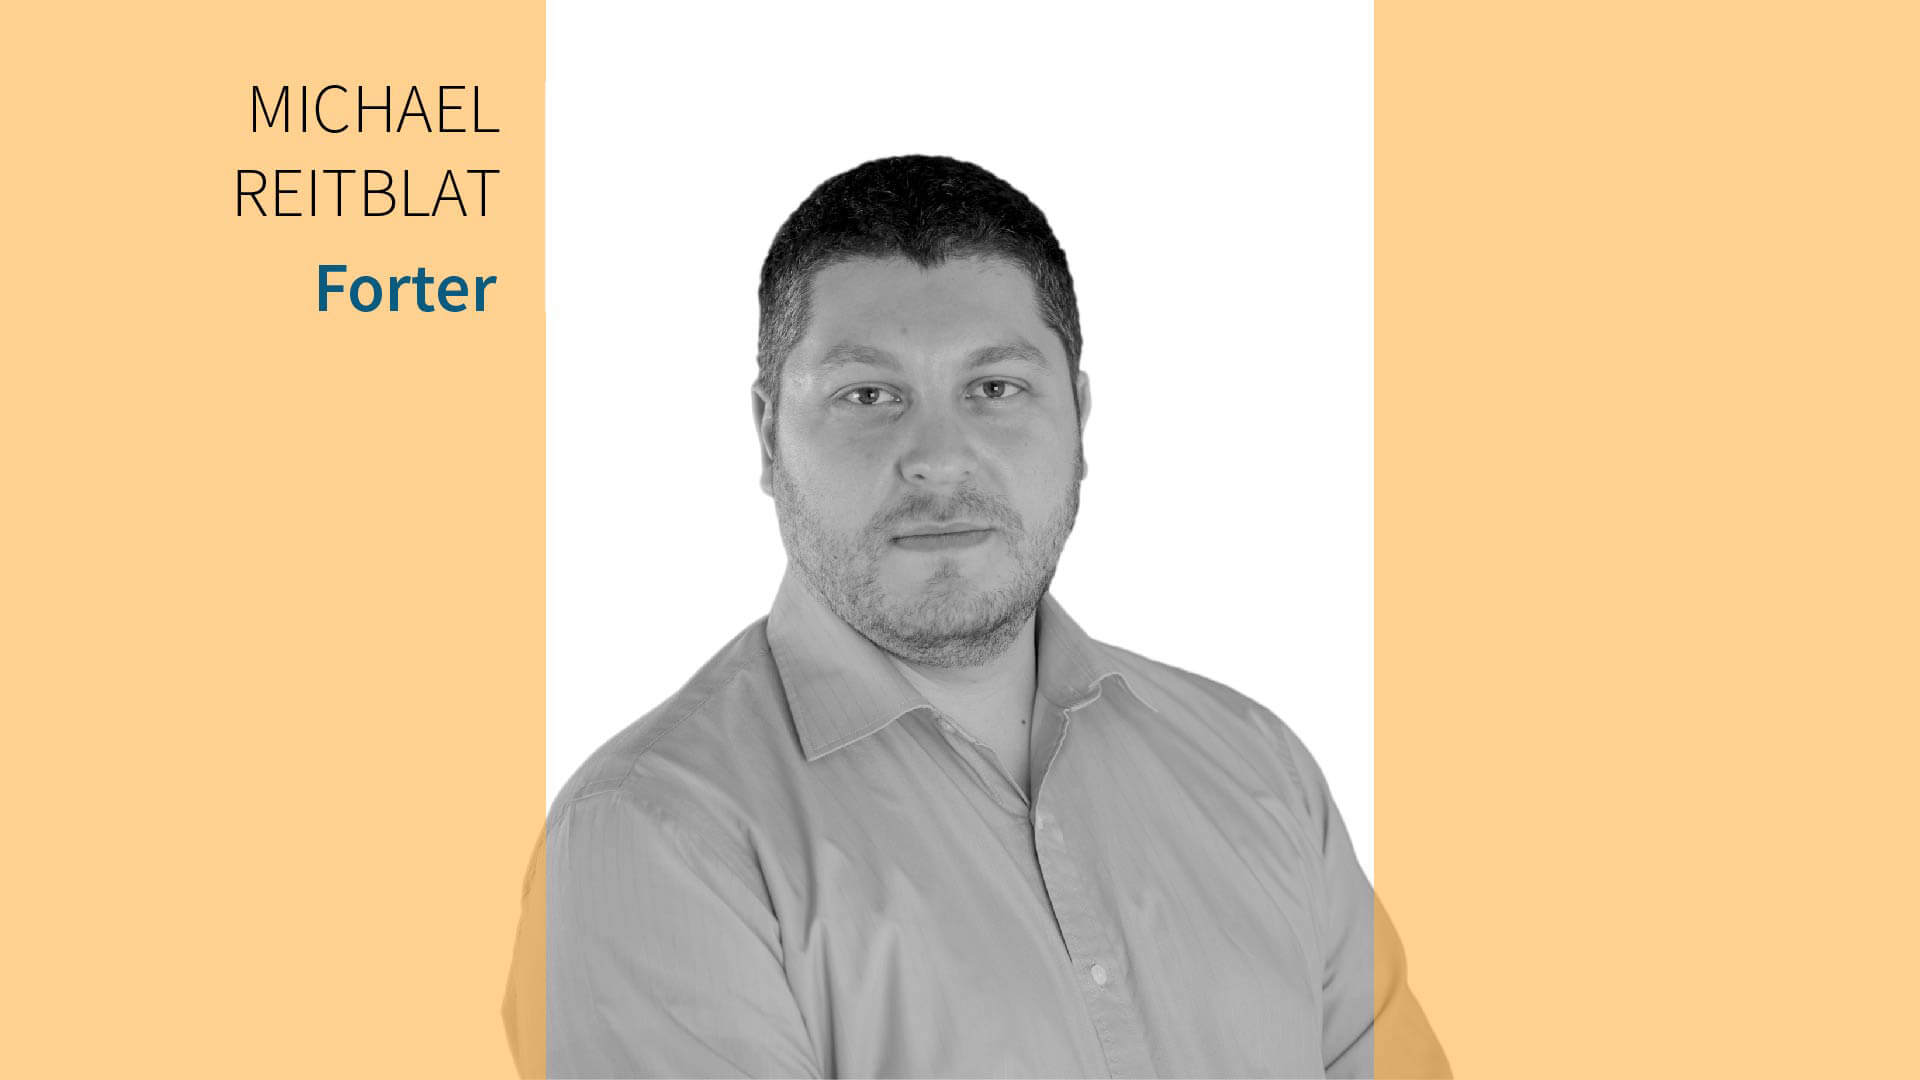 This Former Israeli Intelligence Officer Fights Cyber Fraud With His Company Forter